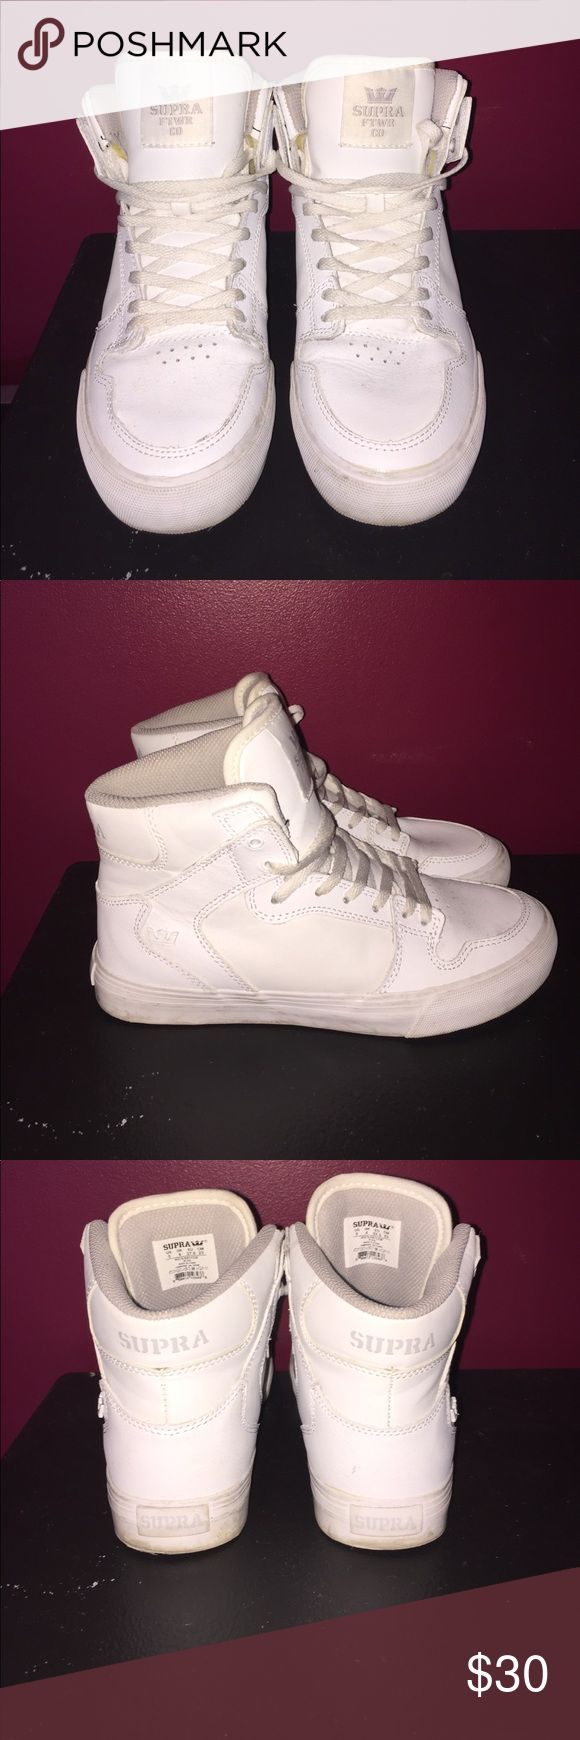 Sneakers. All white Supra sneakers with red bottoms. Pretty good condition worn two times. 8/10 woman's 5. True to size. Supra Shoes Sneakers